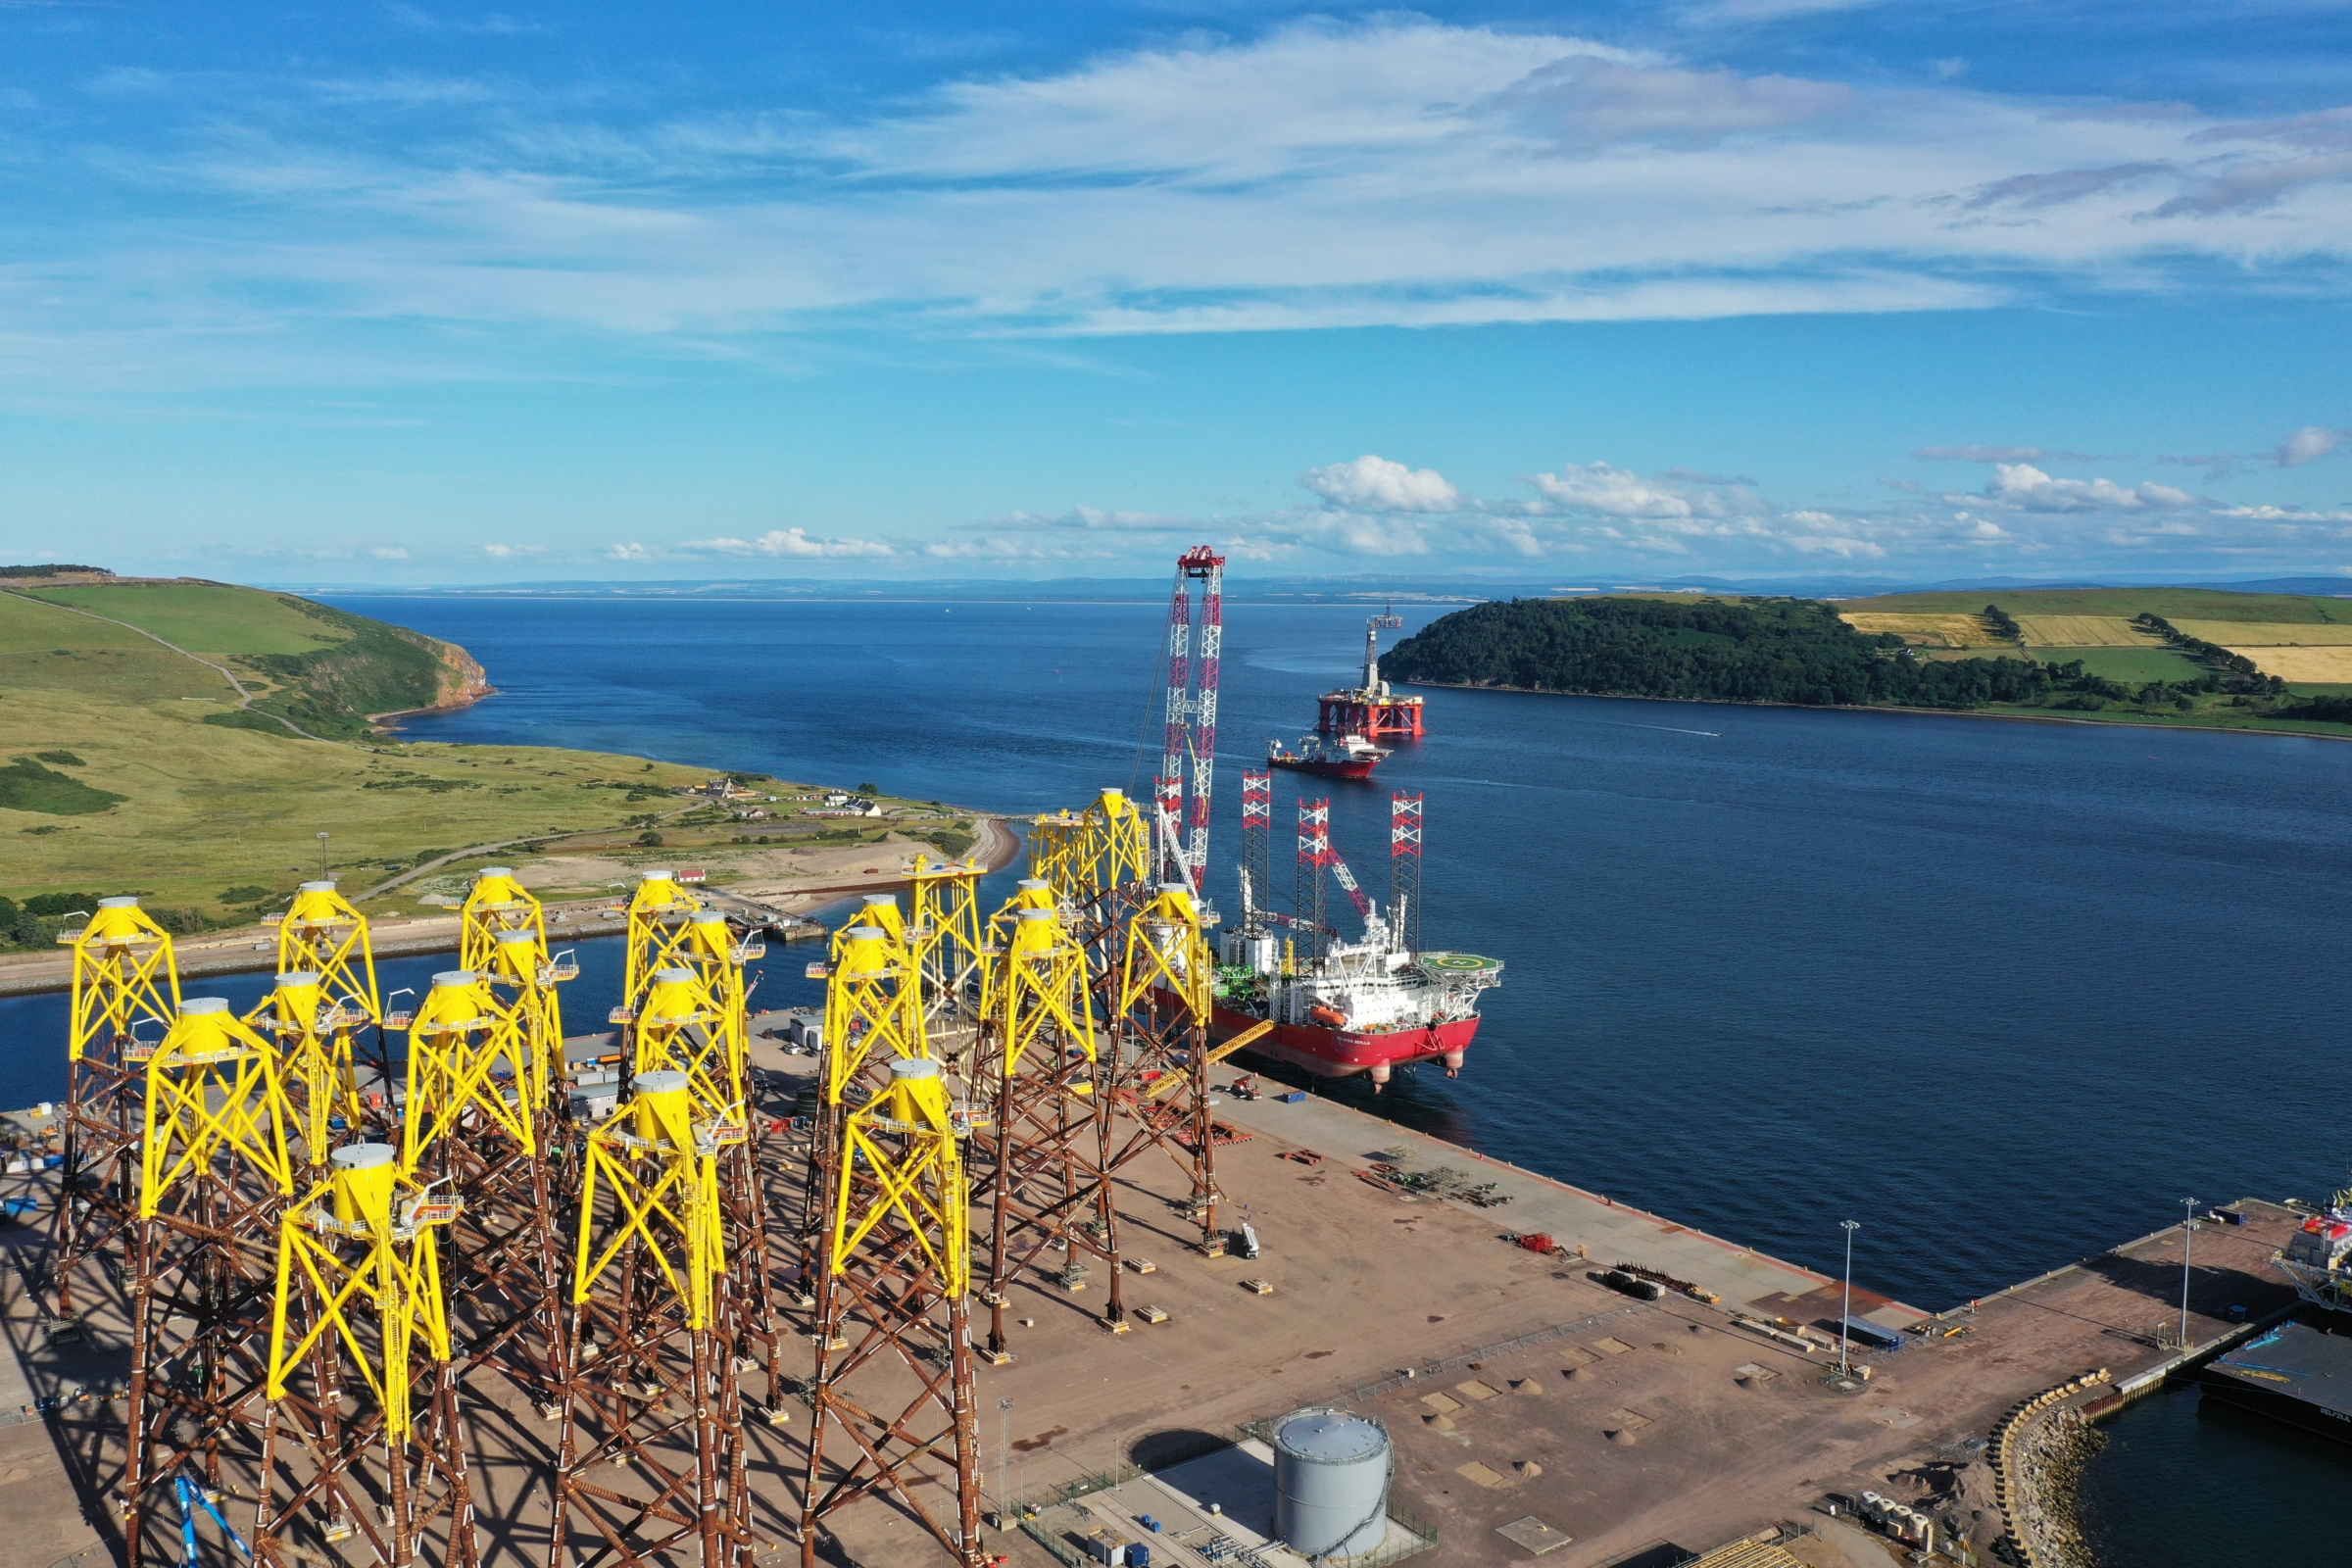 Successful installation of two offshore substation platforms and 20 jackets marks major milestone at the Moray East offshore wind farm